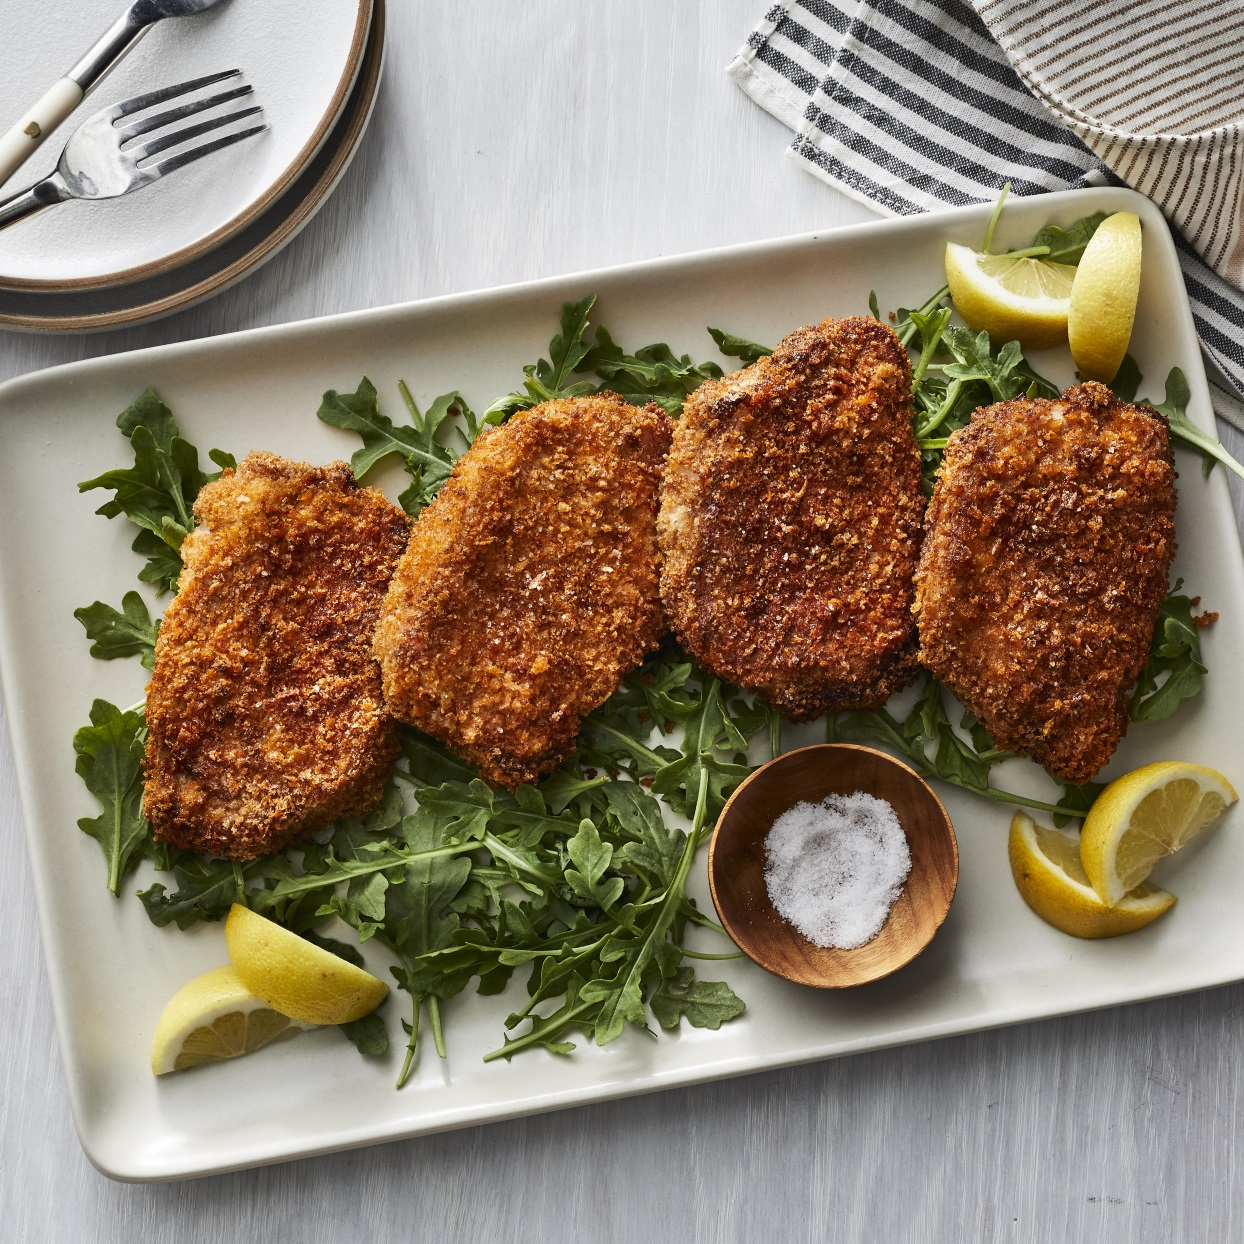 These crispy breaded air-fryer pork chops don't require a lot of oil to create a deep-fried crispy crust. Serve them with your favorite dipping sauce or alongside roasted veggies. Want to double the recipe? Depending on the size of your air fryer, you may have to cook the pork chops in batches, but that's easy to do.